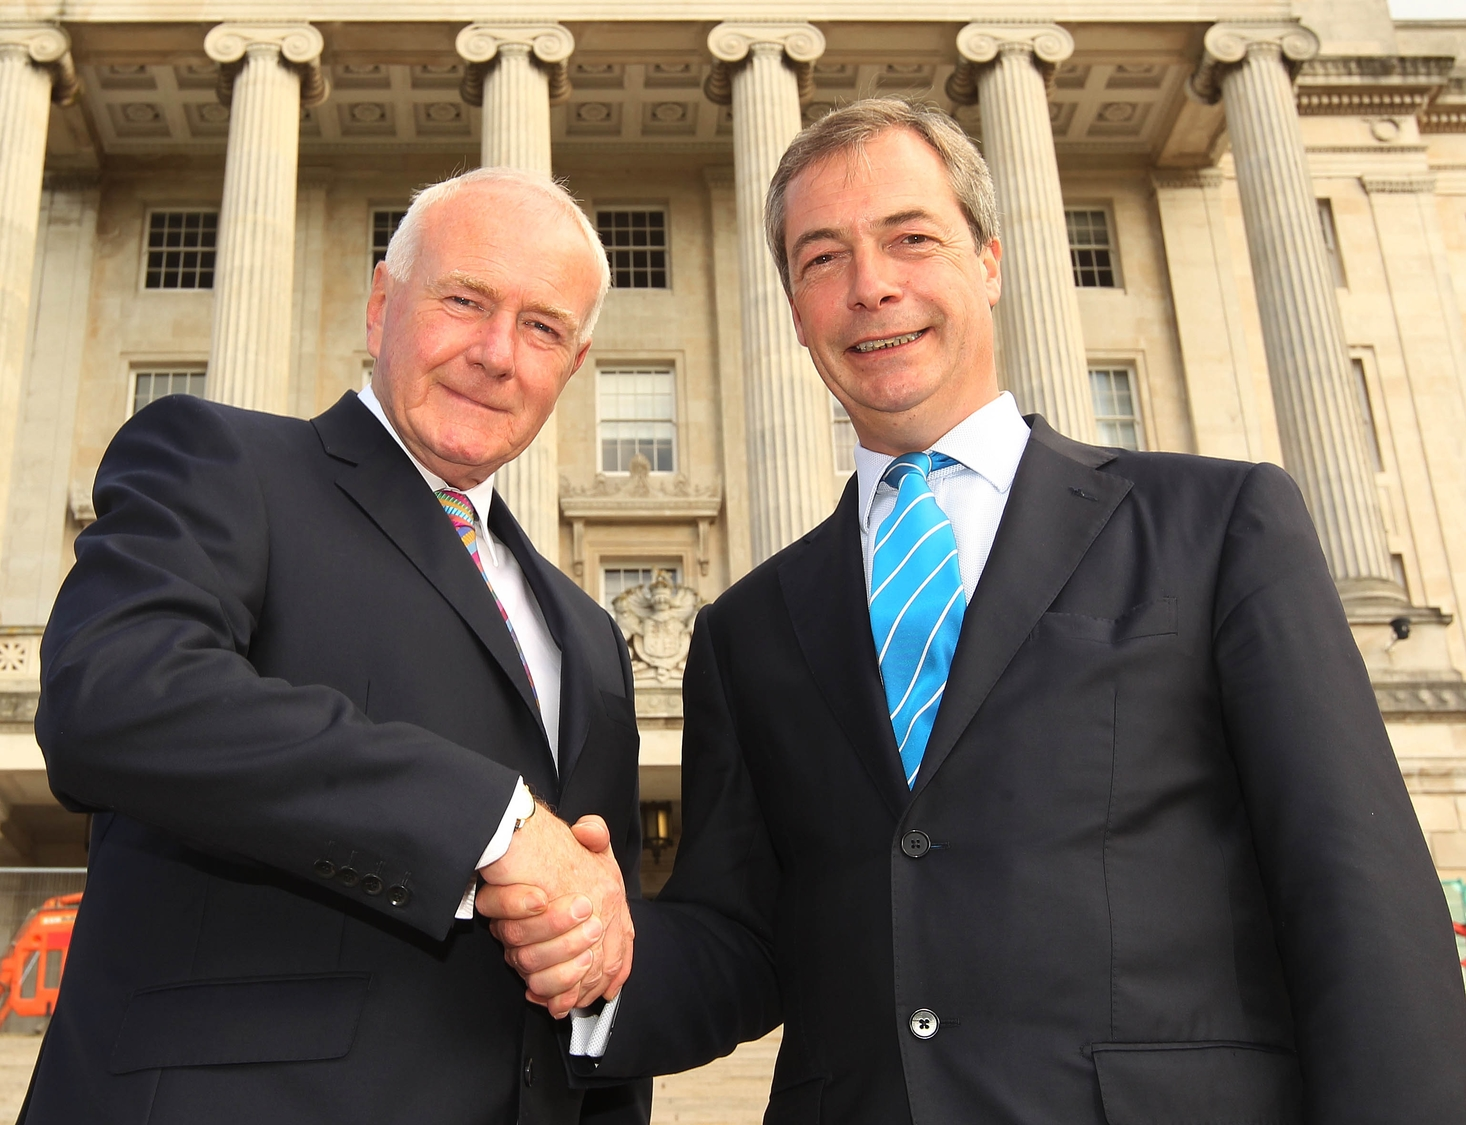 UKIP Assembly member David McNarry and his party leader Nigel Farage at Stormont.